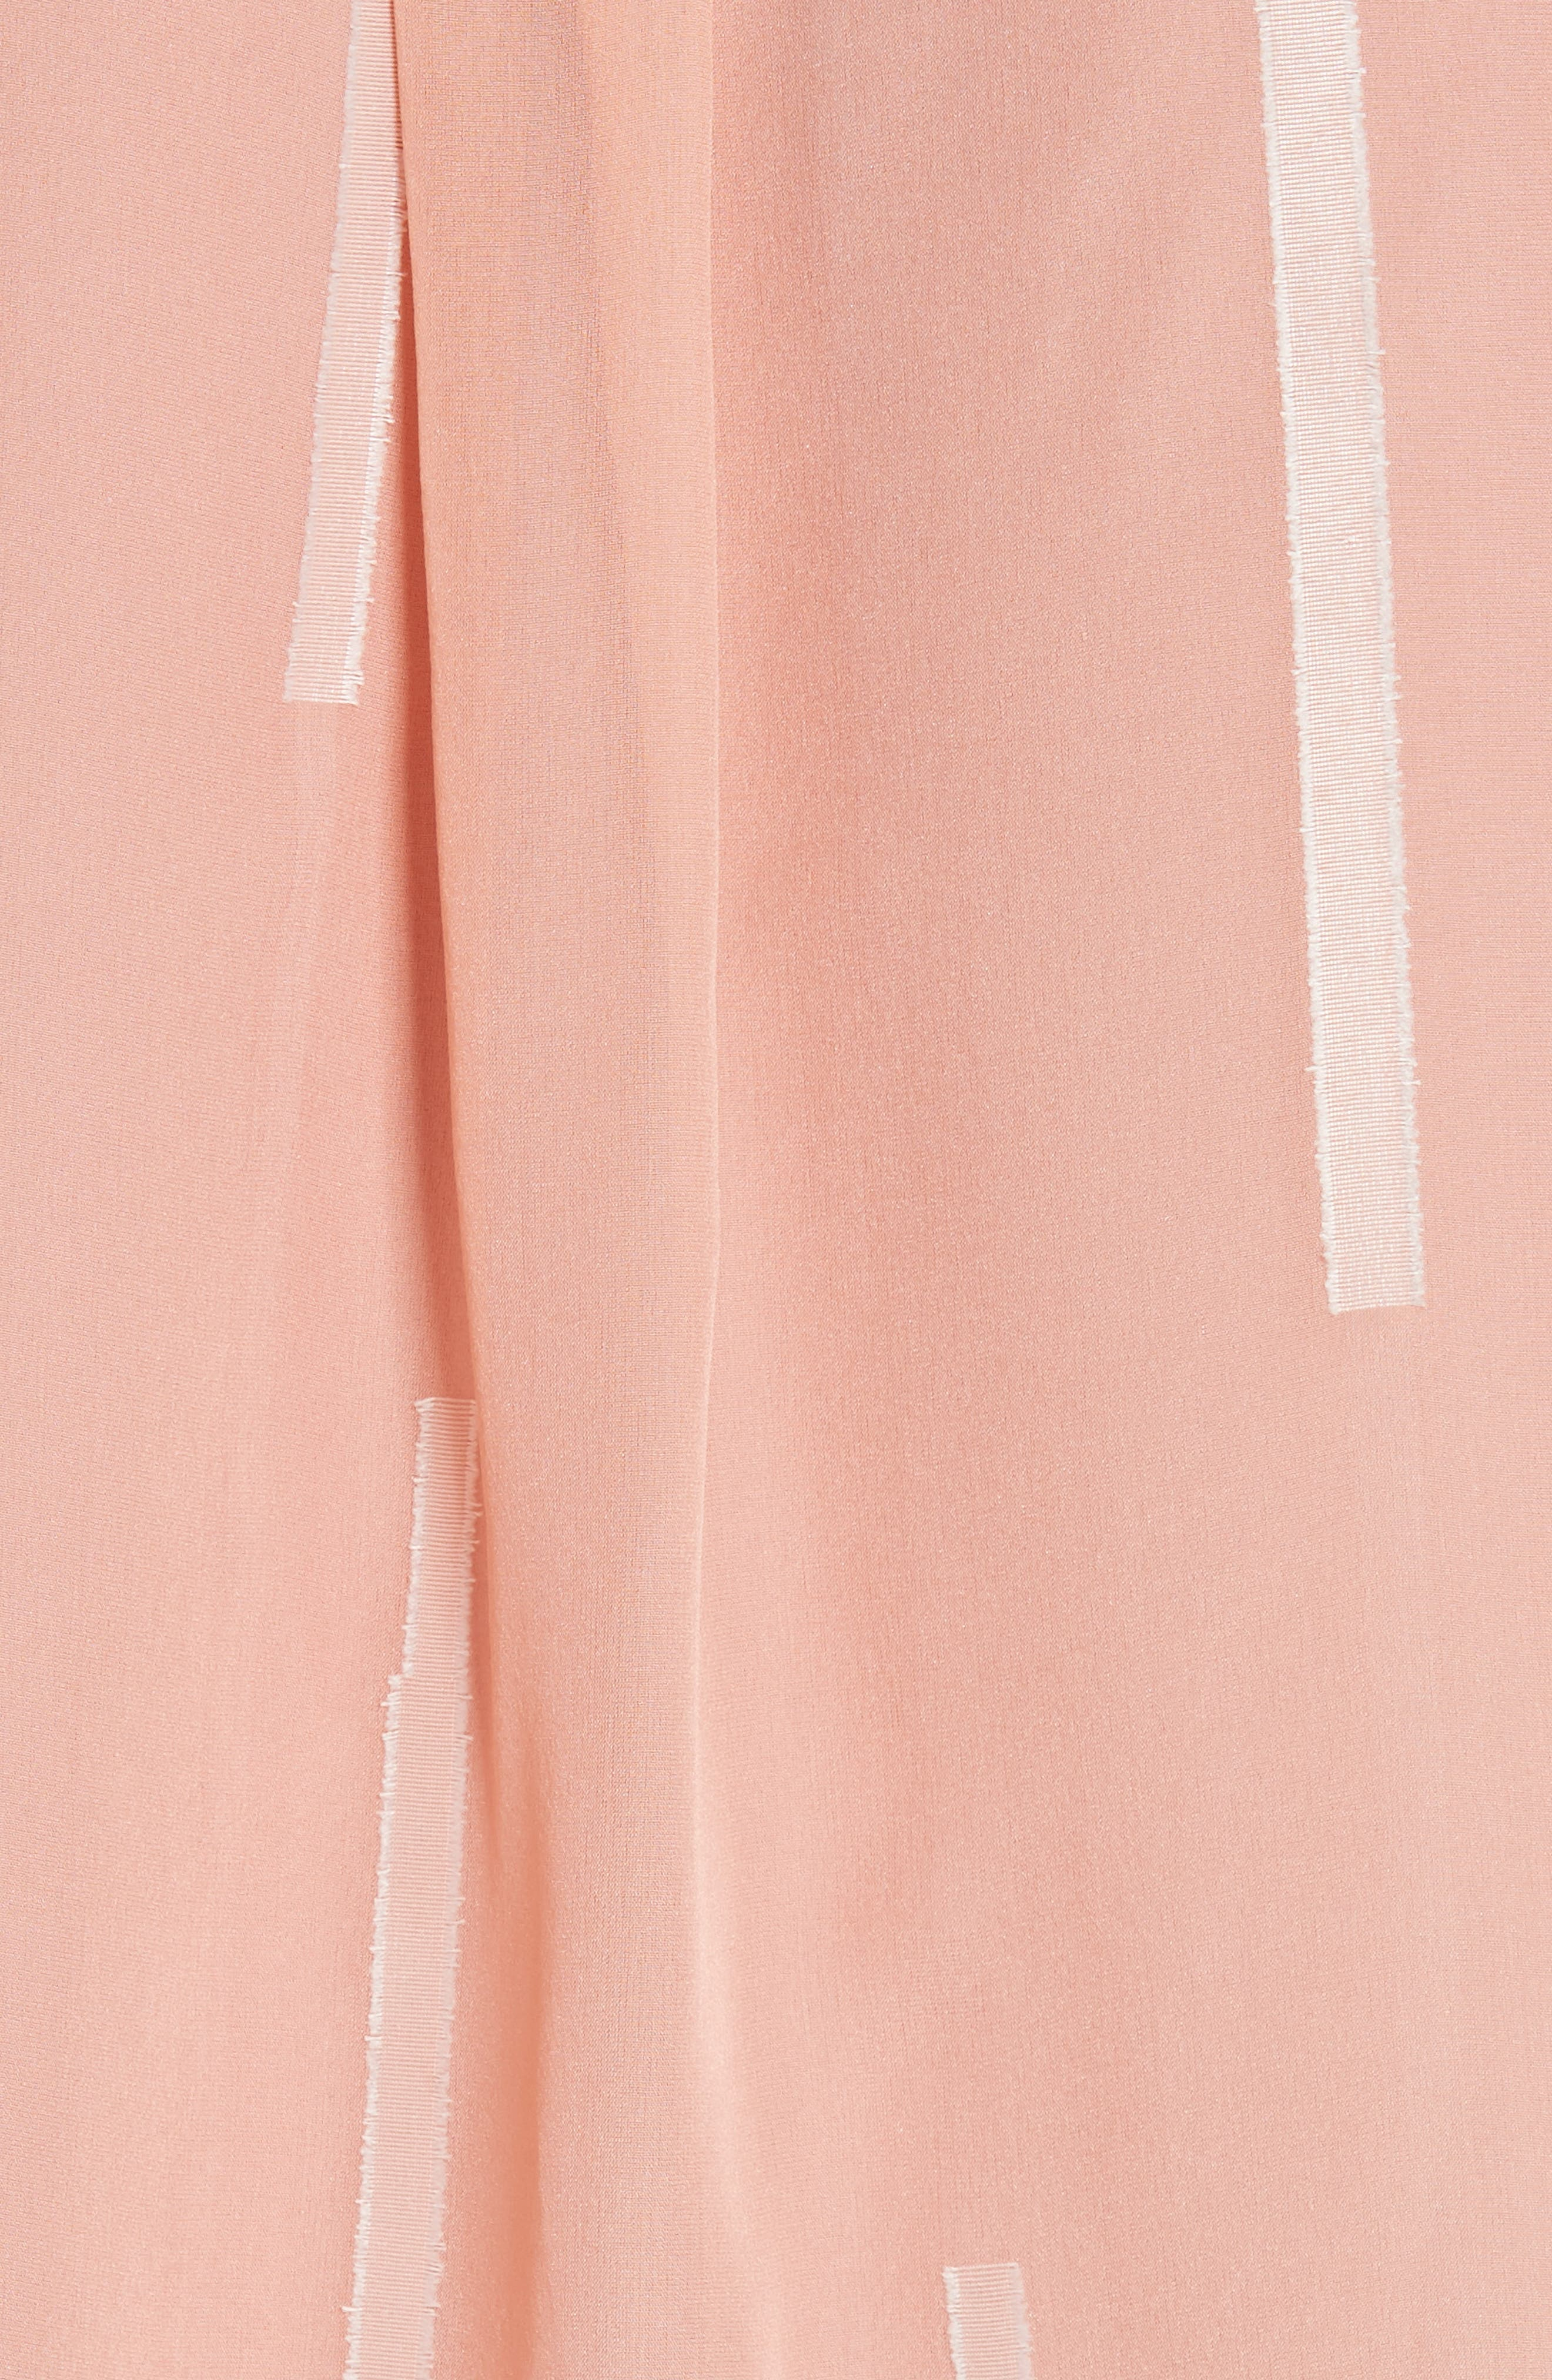 Clipped Stripe Handkerchief Silk Blend Blouse,                             Alternate thumbnail 5, color,                             DUSTY ROSE